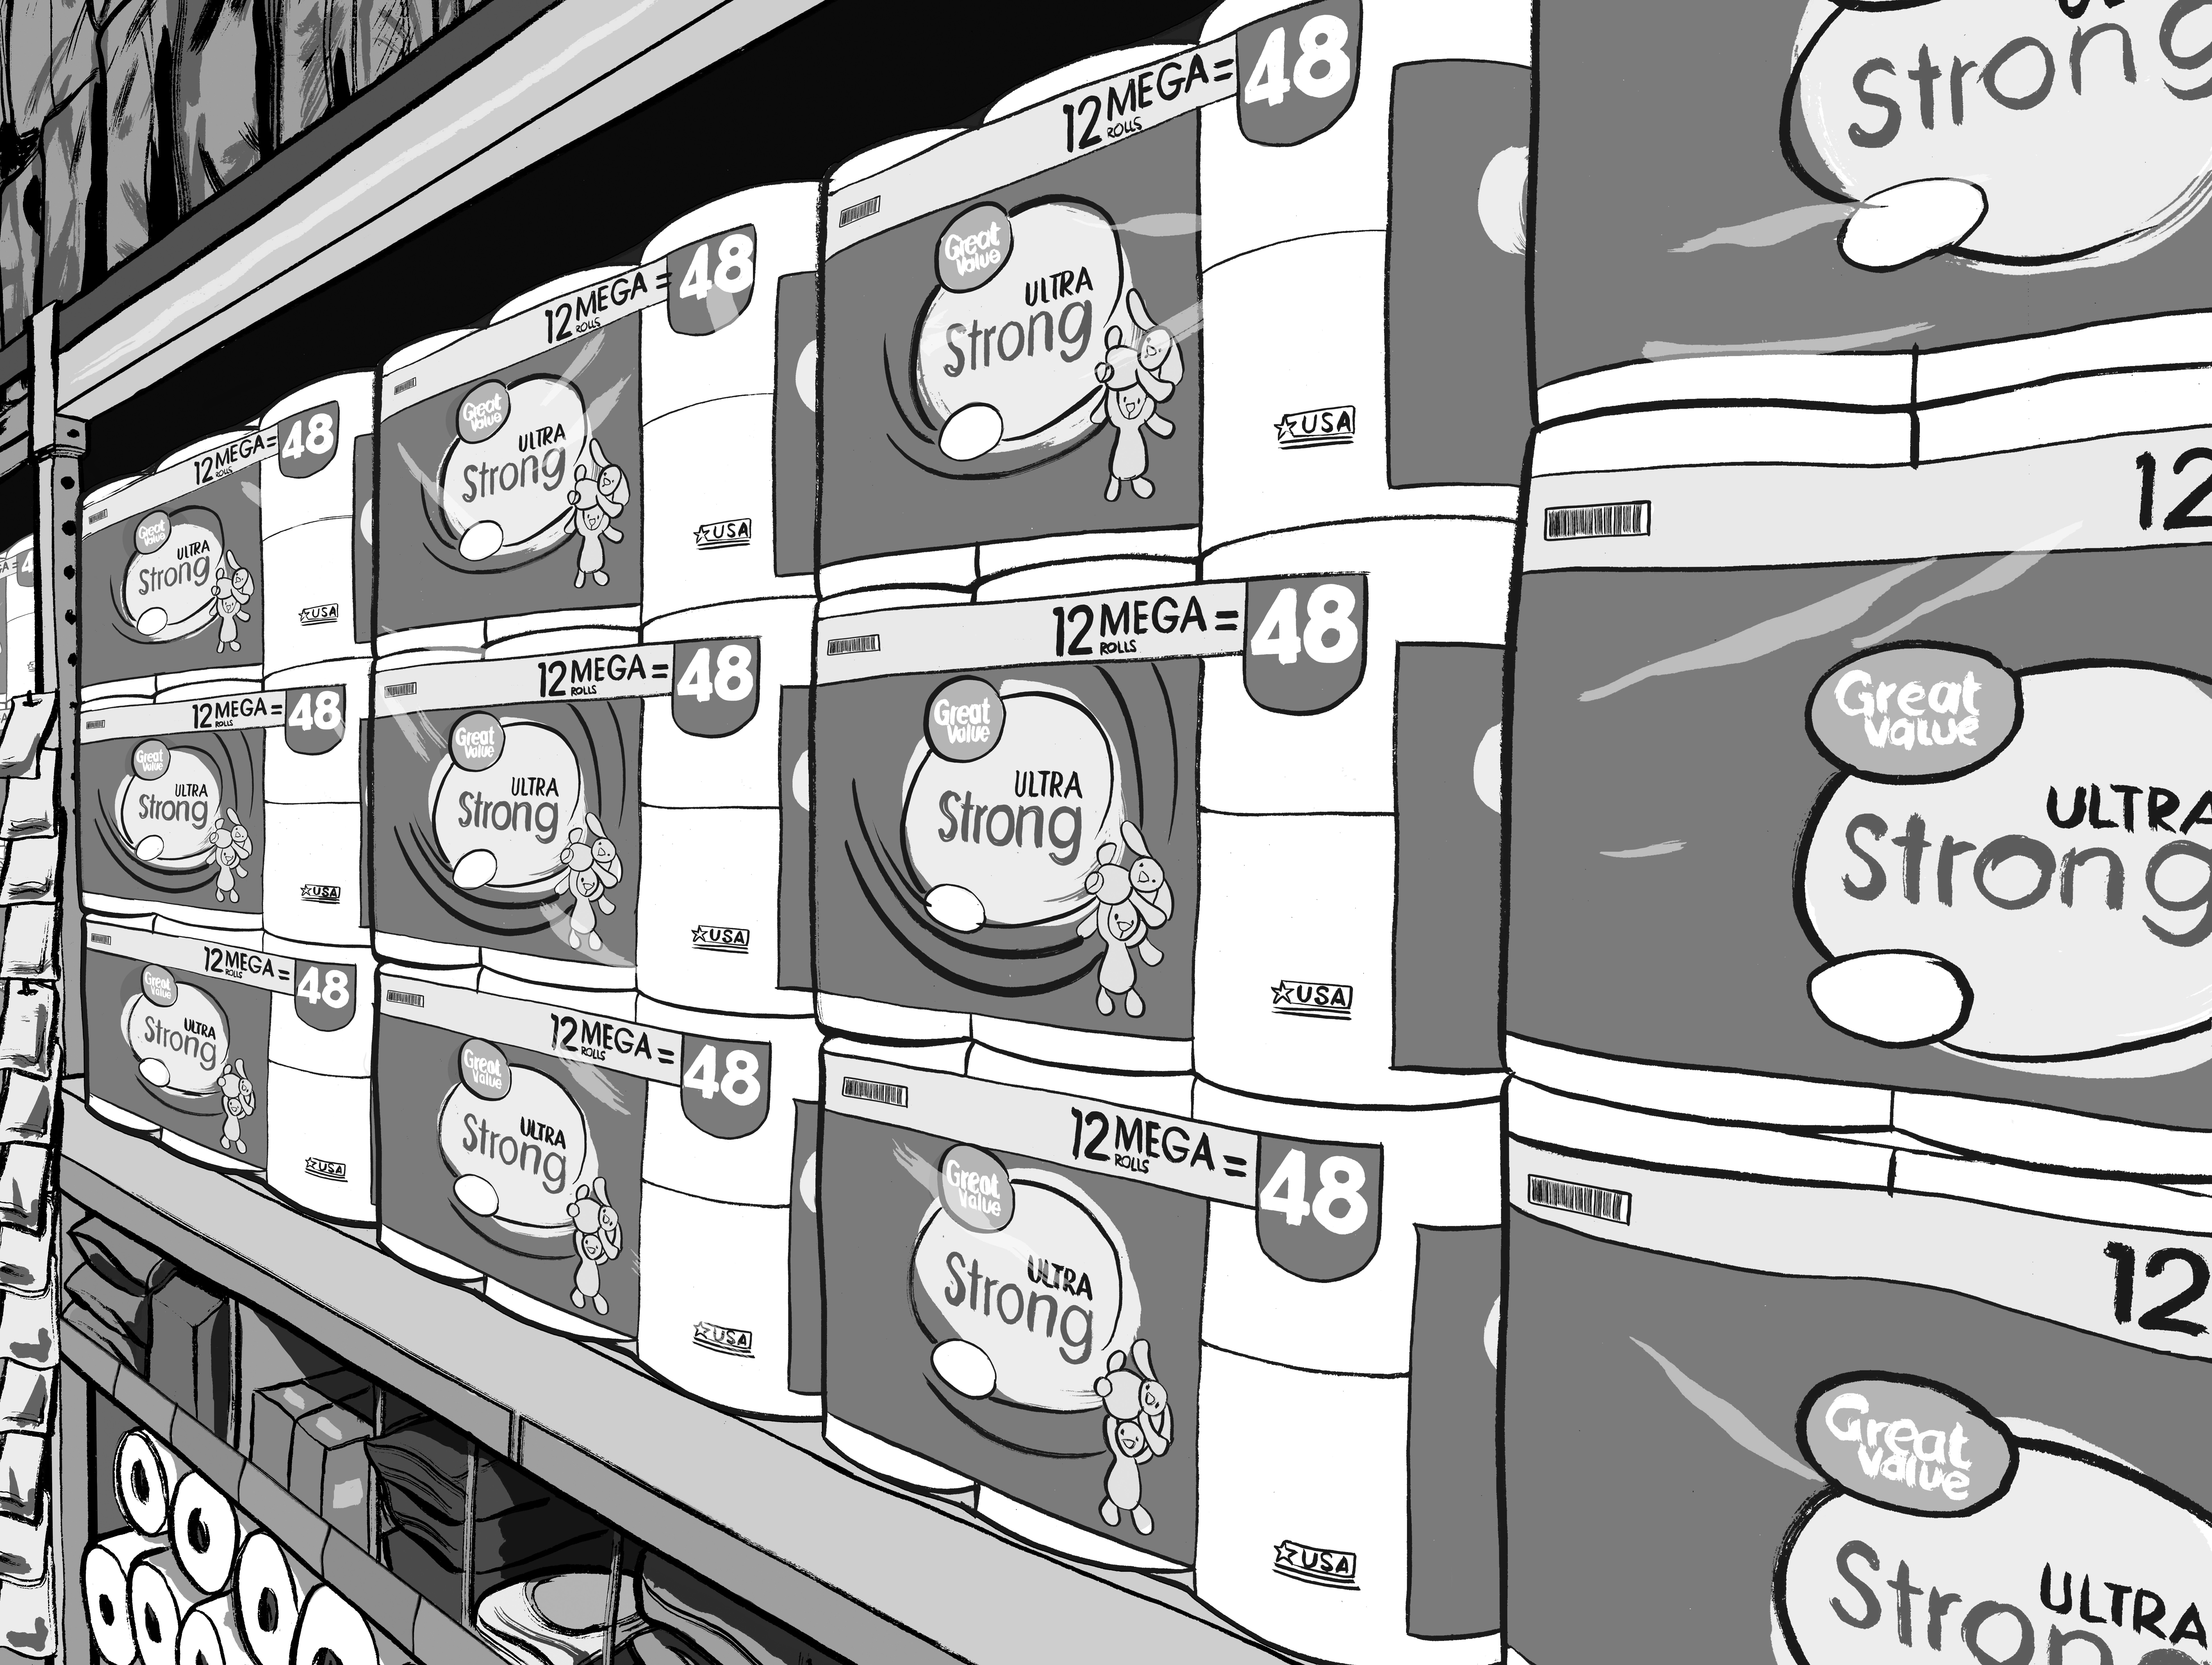 Illustration of Great Value toilet paper sitting on a shelf